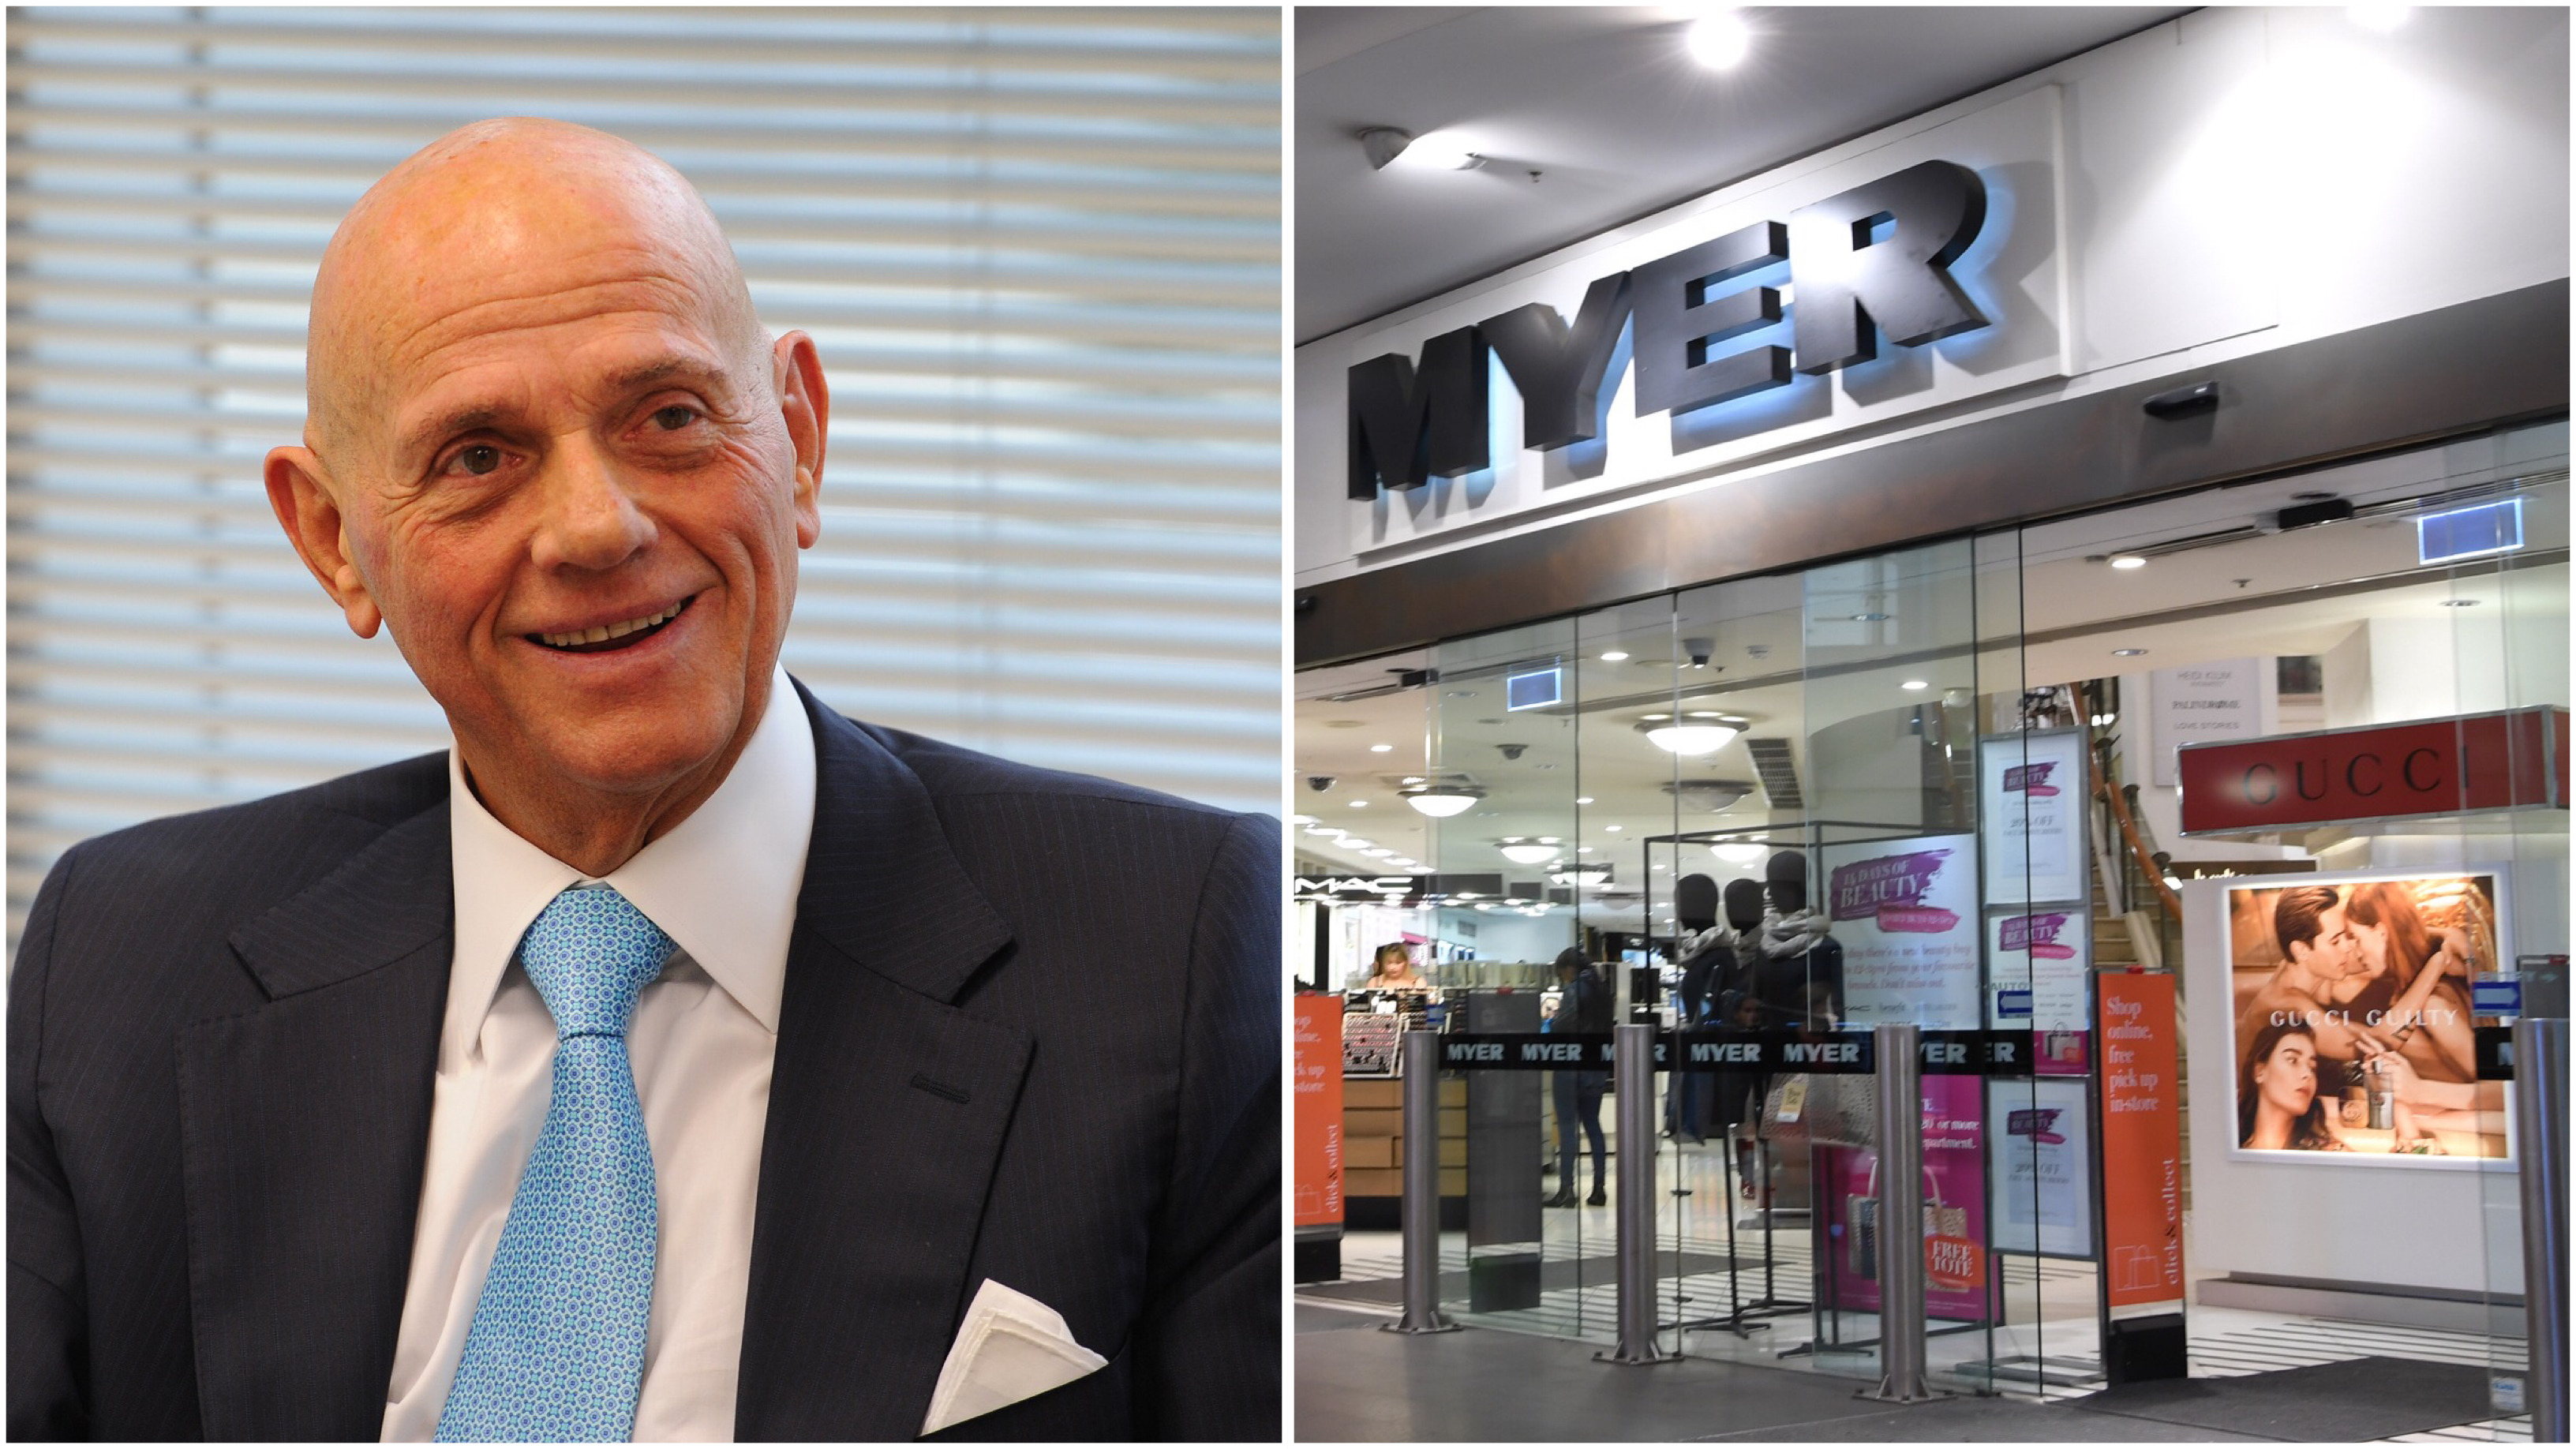 The Myer annual general meeting will determine if a spill will happen for the retail giant